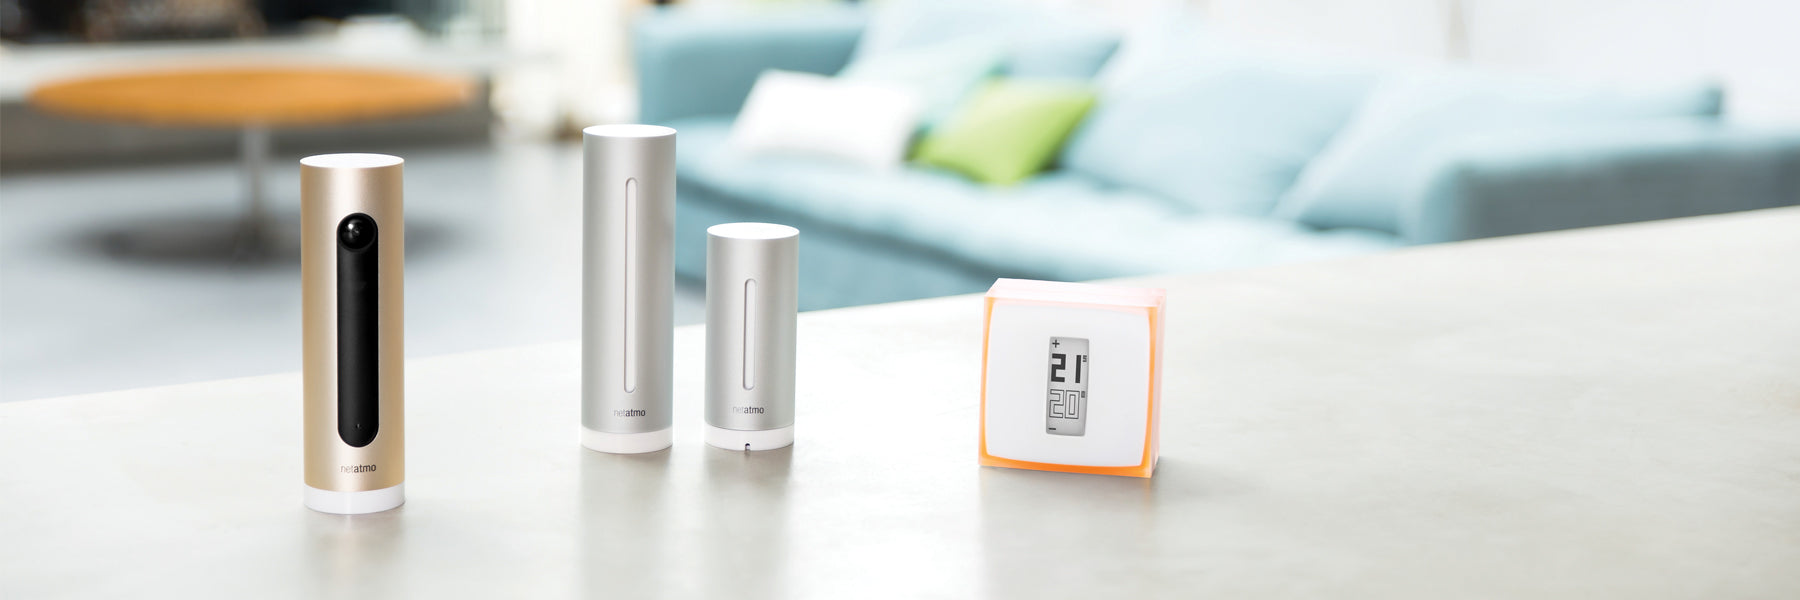 Netatmo - Award Winning Smart Home Innovation Devices